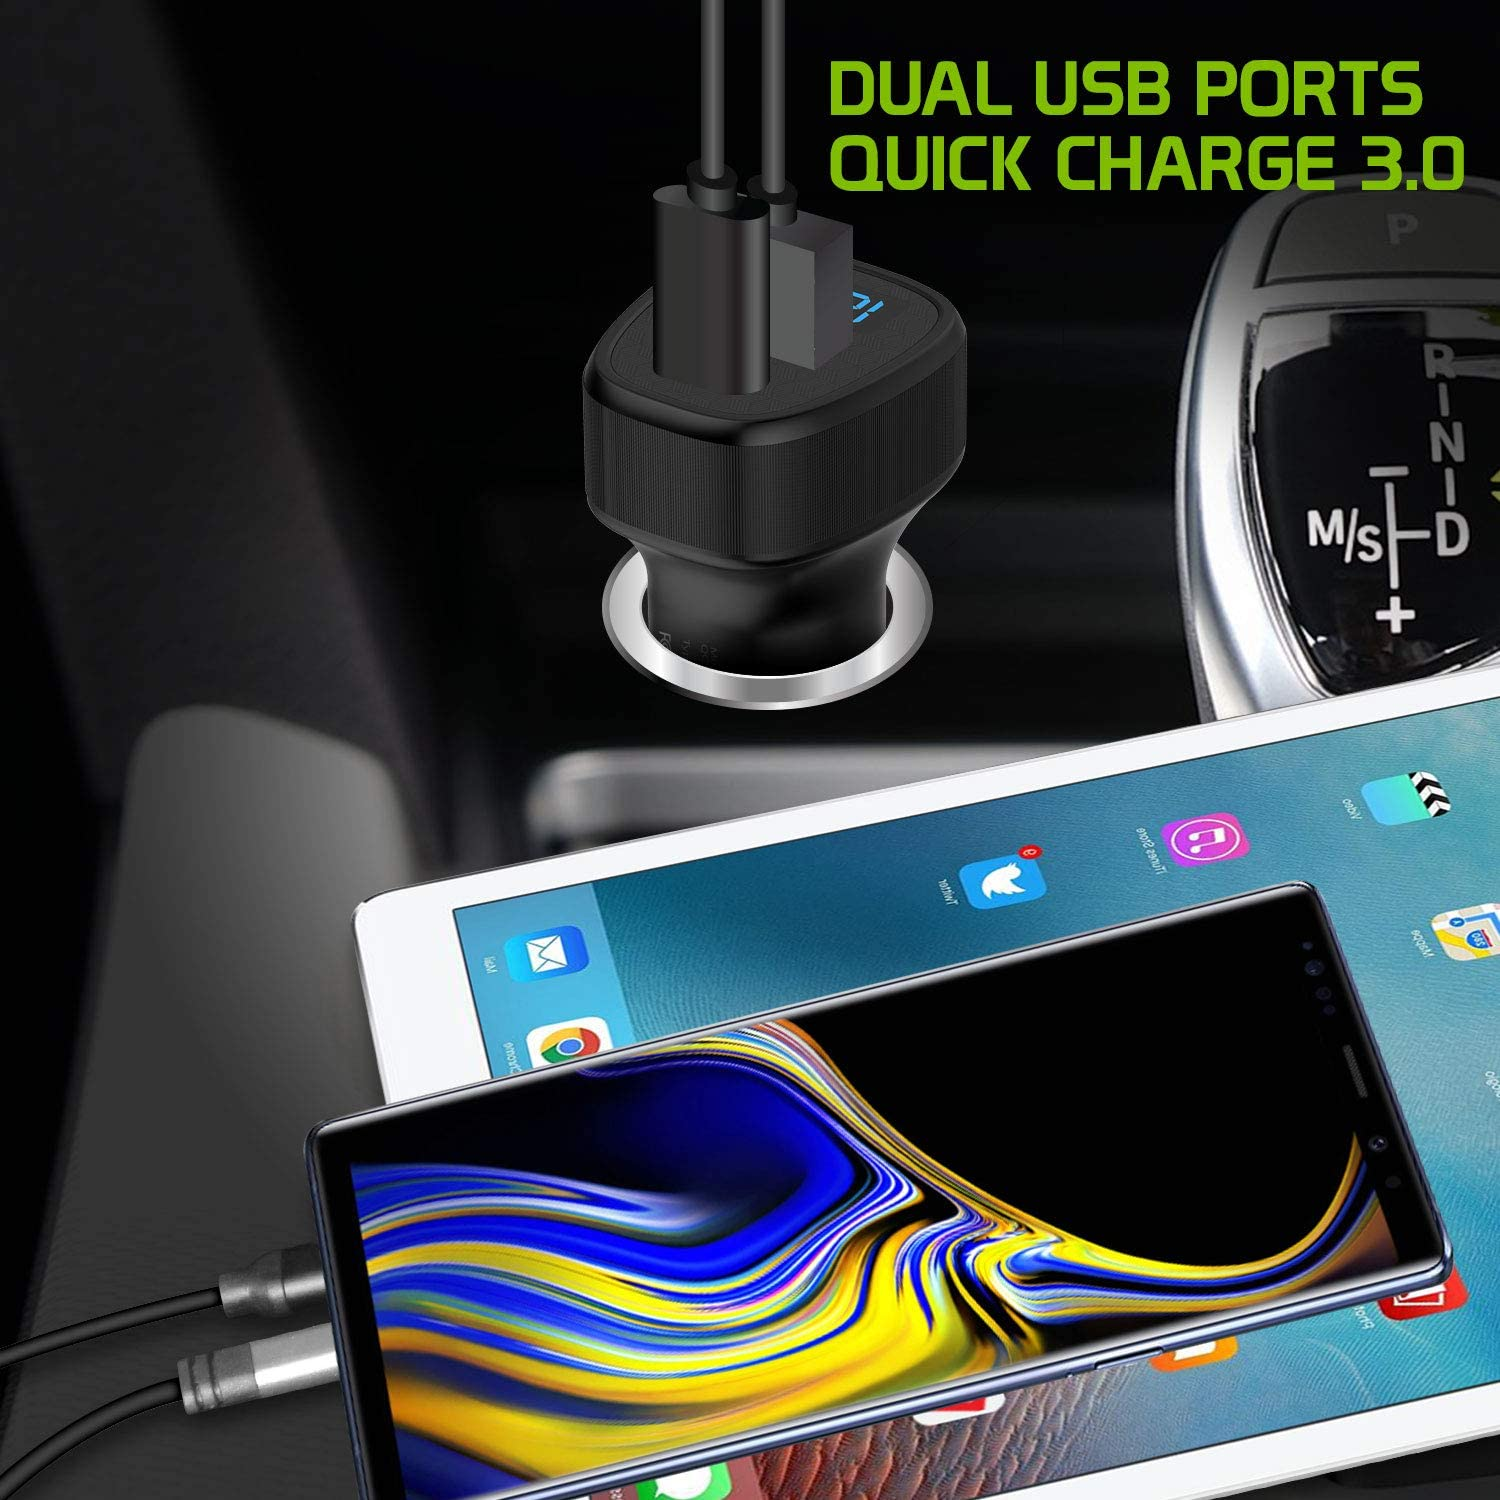 S20 Ultra S10 S10 Google Pixel 4XL 4 3 XL Cellet Dual USB Car Charger Universal High Power 36 Watt 2 Ports USB A /& USB C Quick Charger Compatible for iPhone 11 Pro 11 Pro Max Samsung Galaxy S20 S20